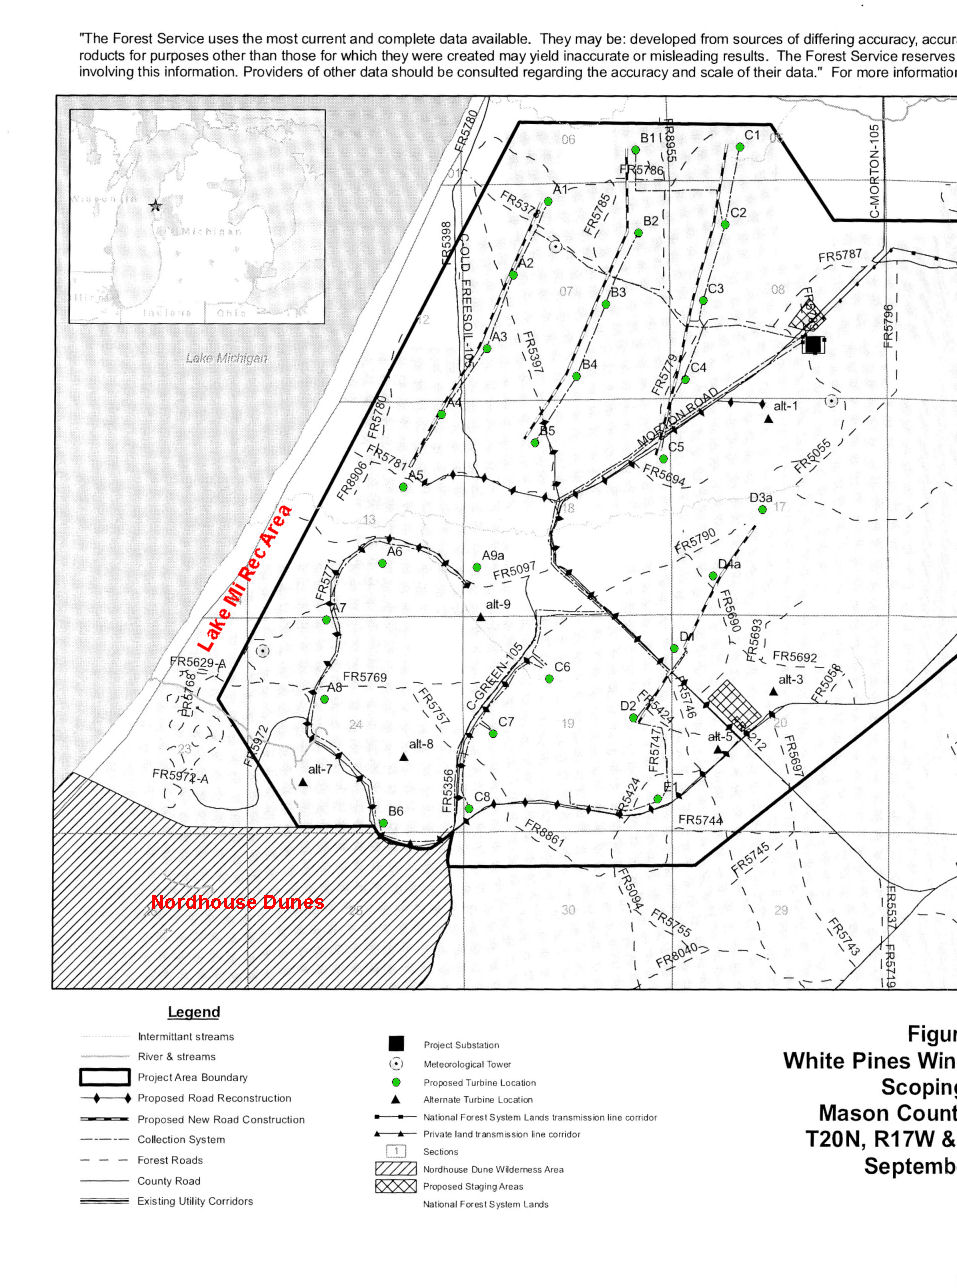 map of proposed wind turbine sites in Nordhouse Dunes